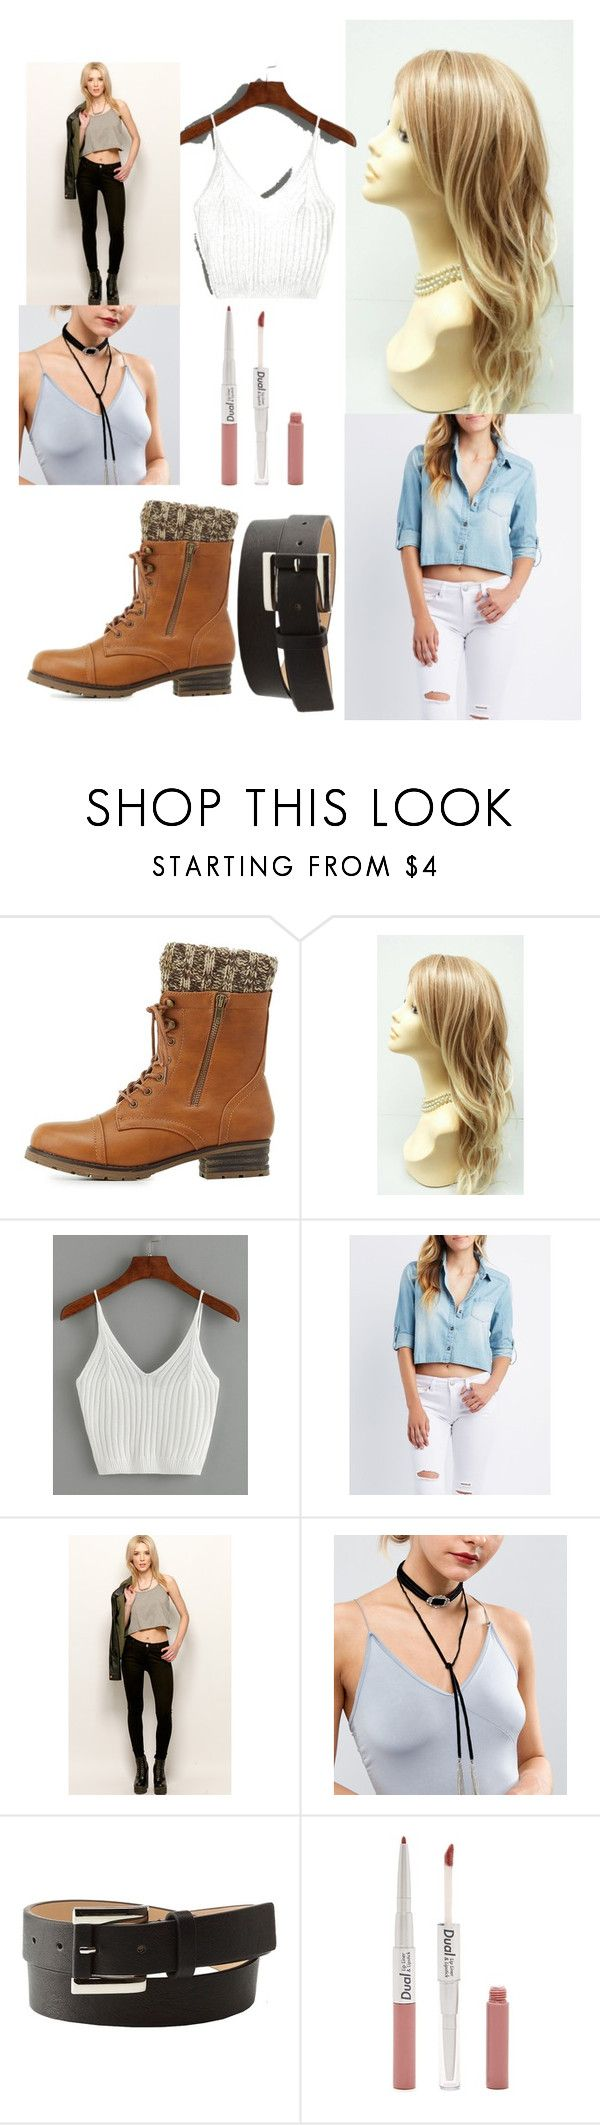 """racing costume party as Julia maddon"" by lolita061 on Polyvore featuring Charlotte Russe, Liars & Lovers and Forever 21"